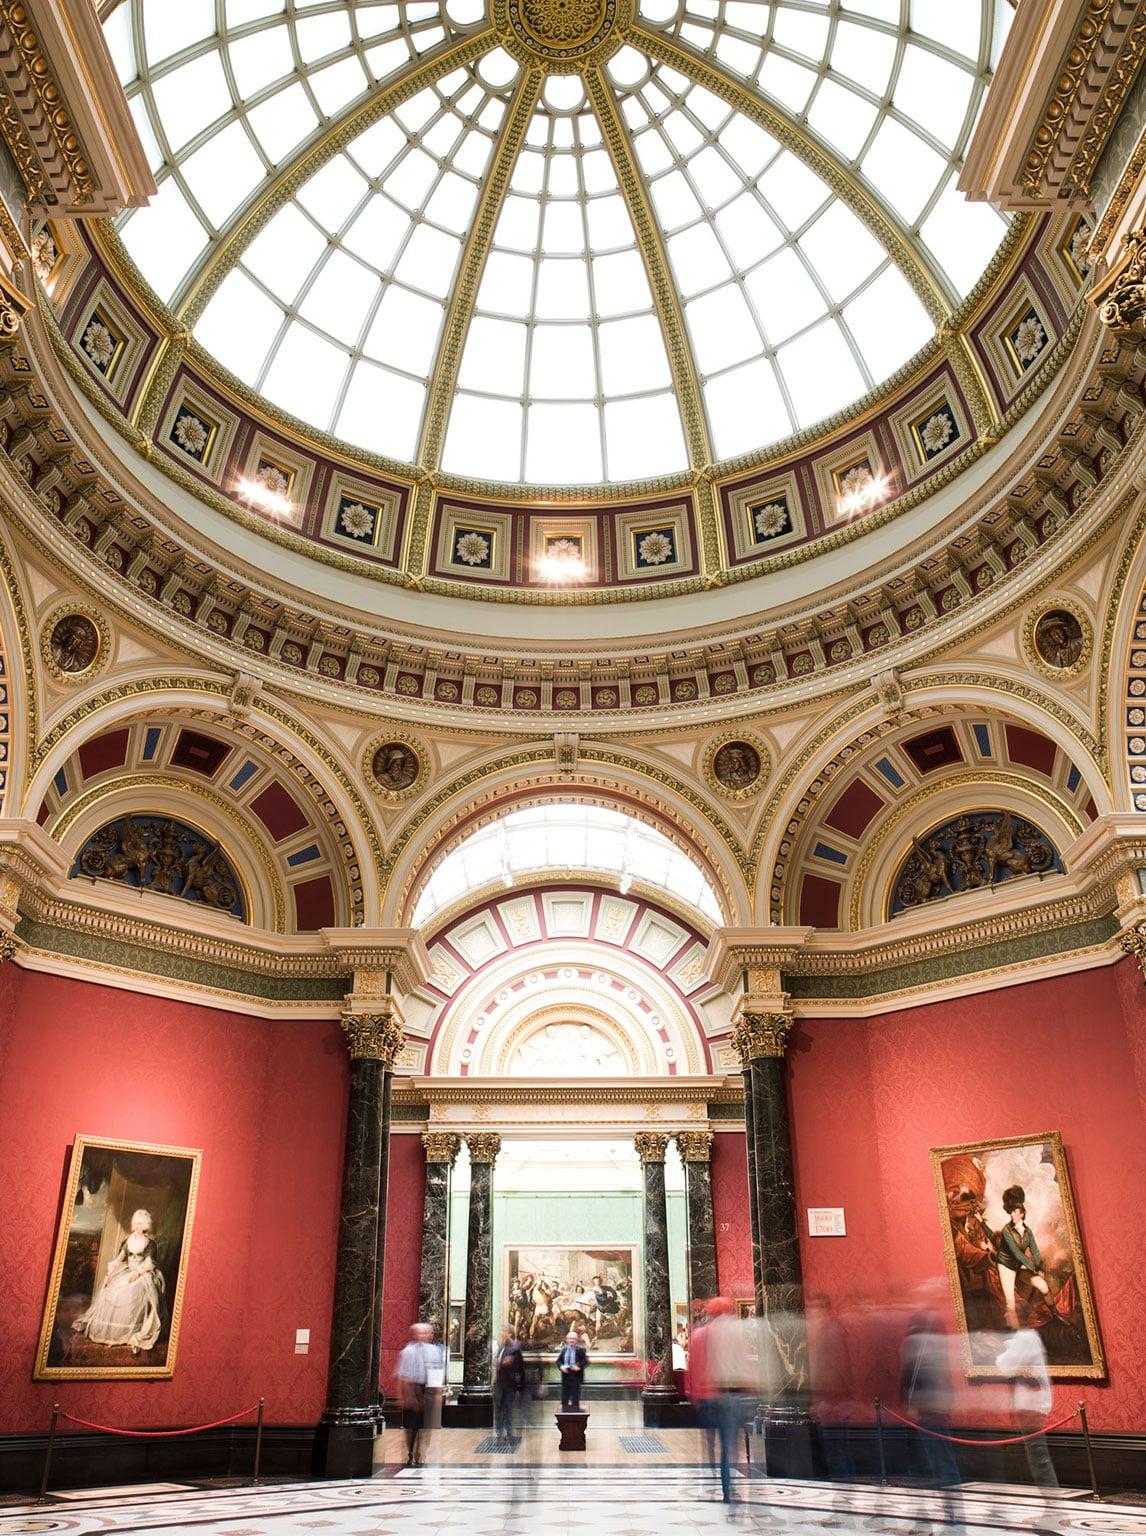 Gallery: National Gallery London